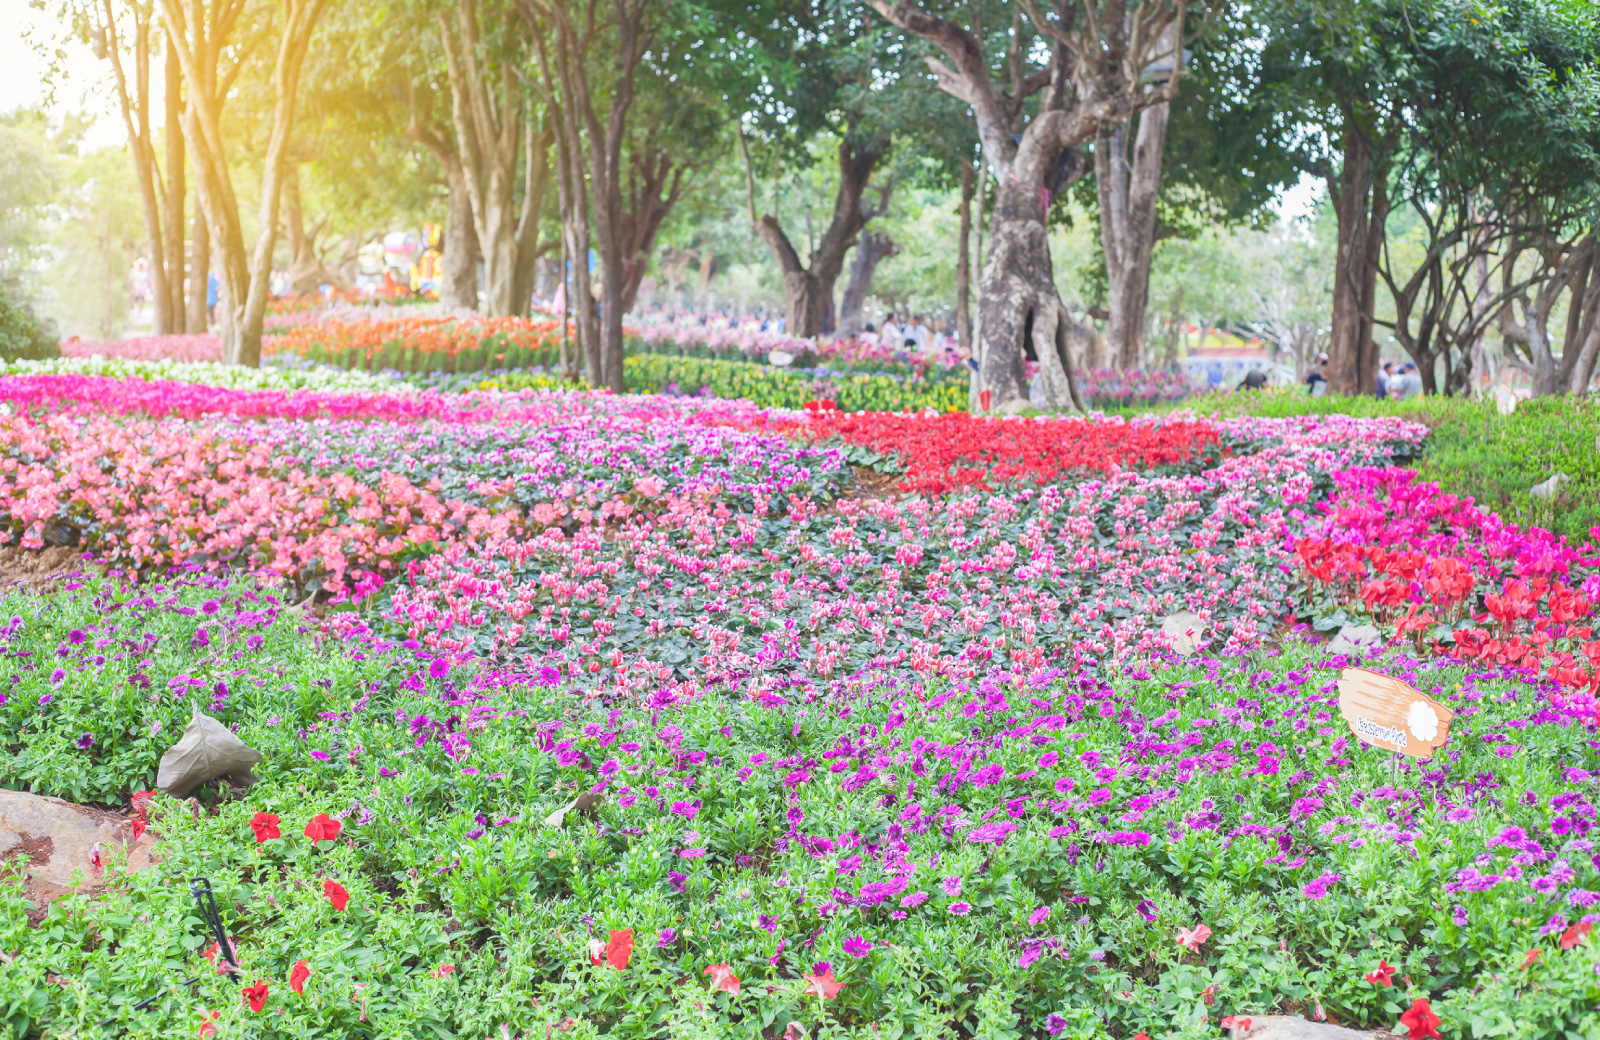 fields of pink, purple and red flowers at Bellevue Botanical Garden - Hyde Square Apts